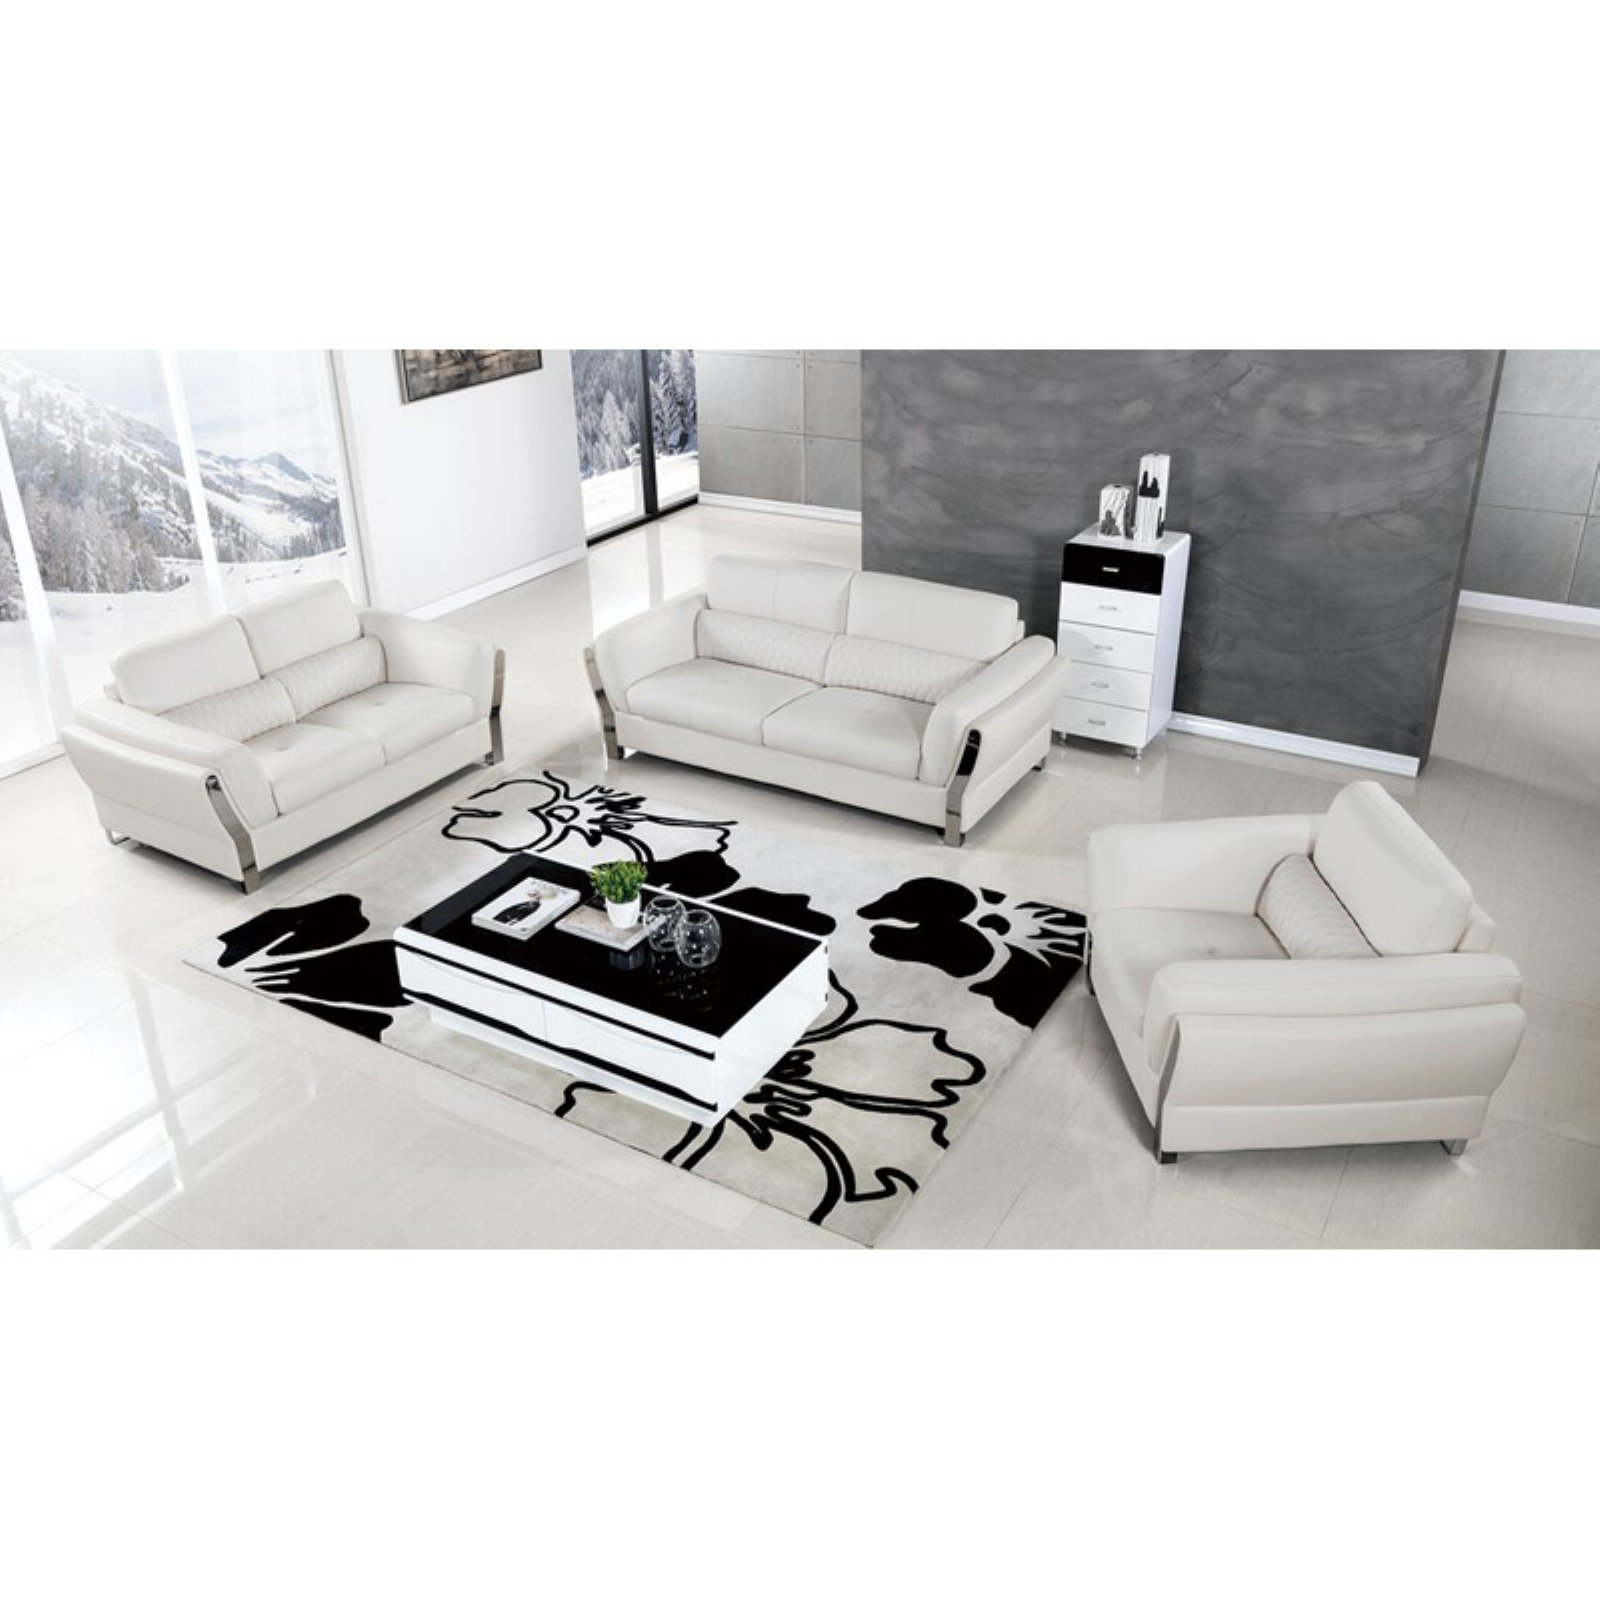 American Eagle Furniture Chelsea Upholstered 3 Piece Sofa Set With with Chelsea 3 Piece Living Room Set Black